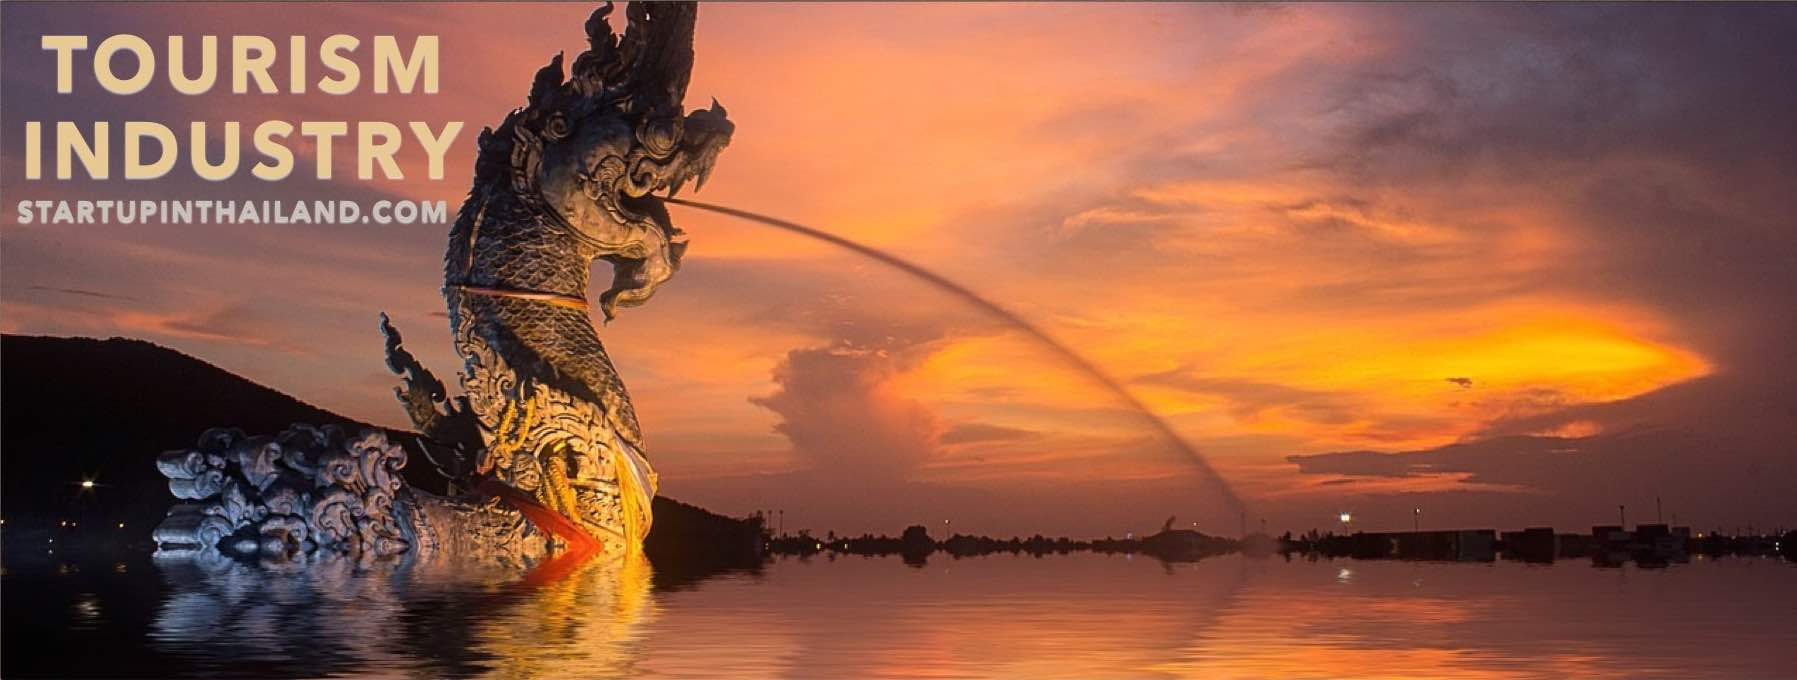 Thailand's landmark dragon fountain on side view with sunset background